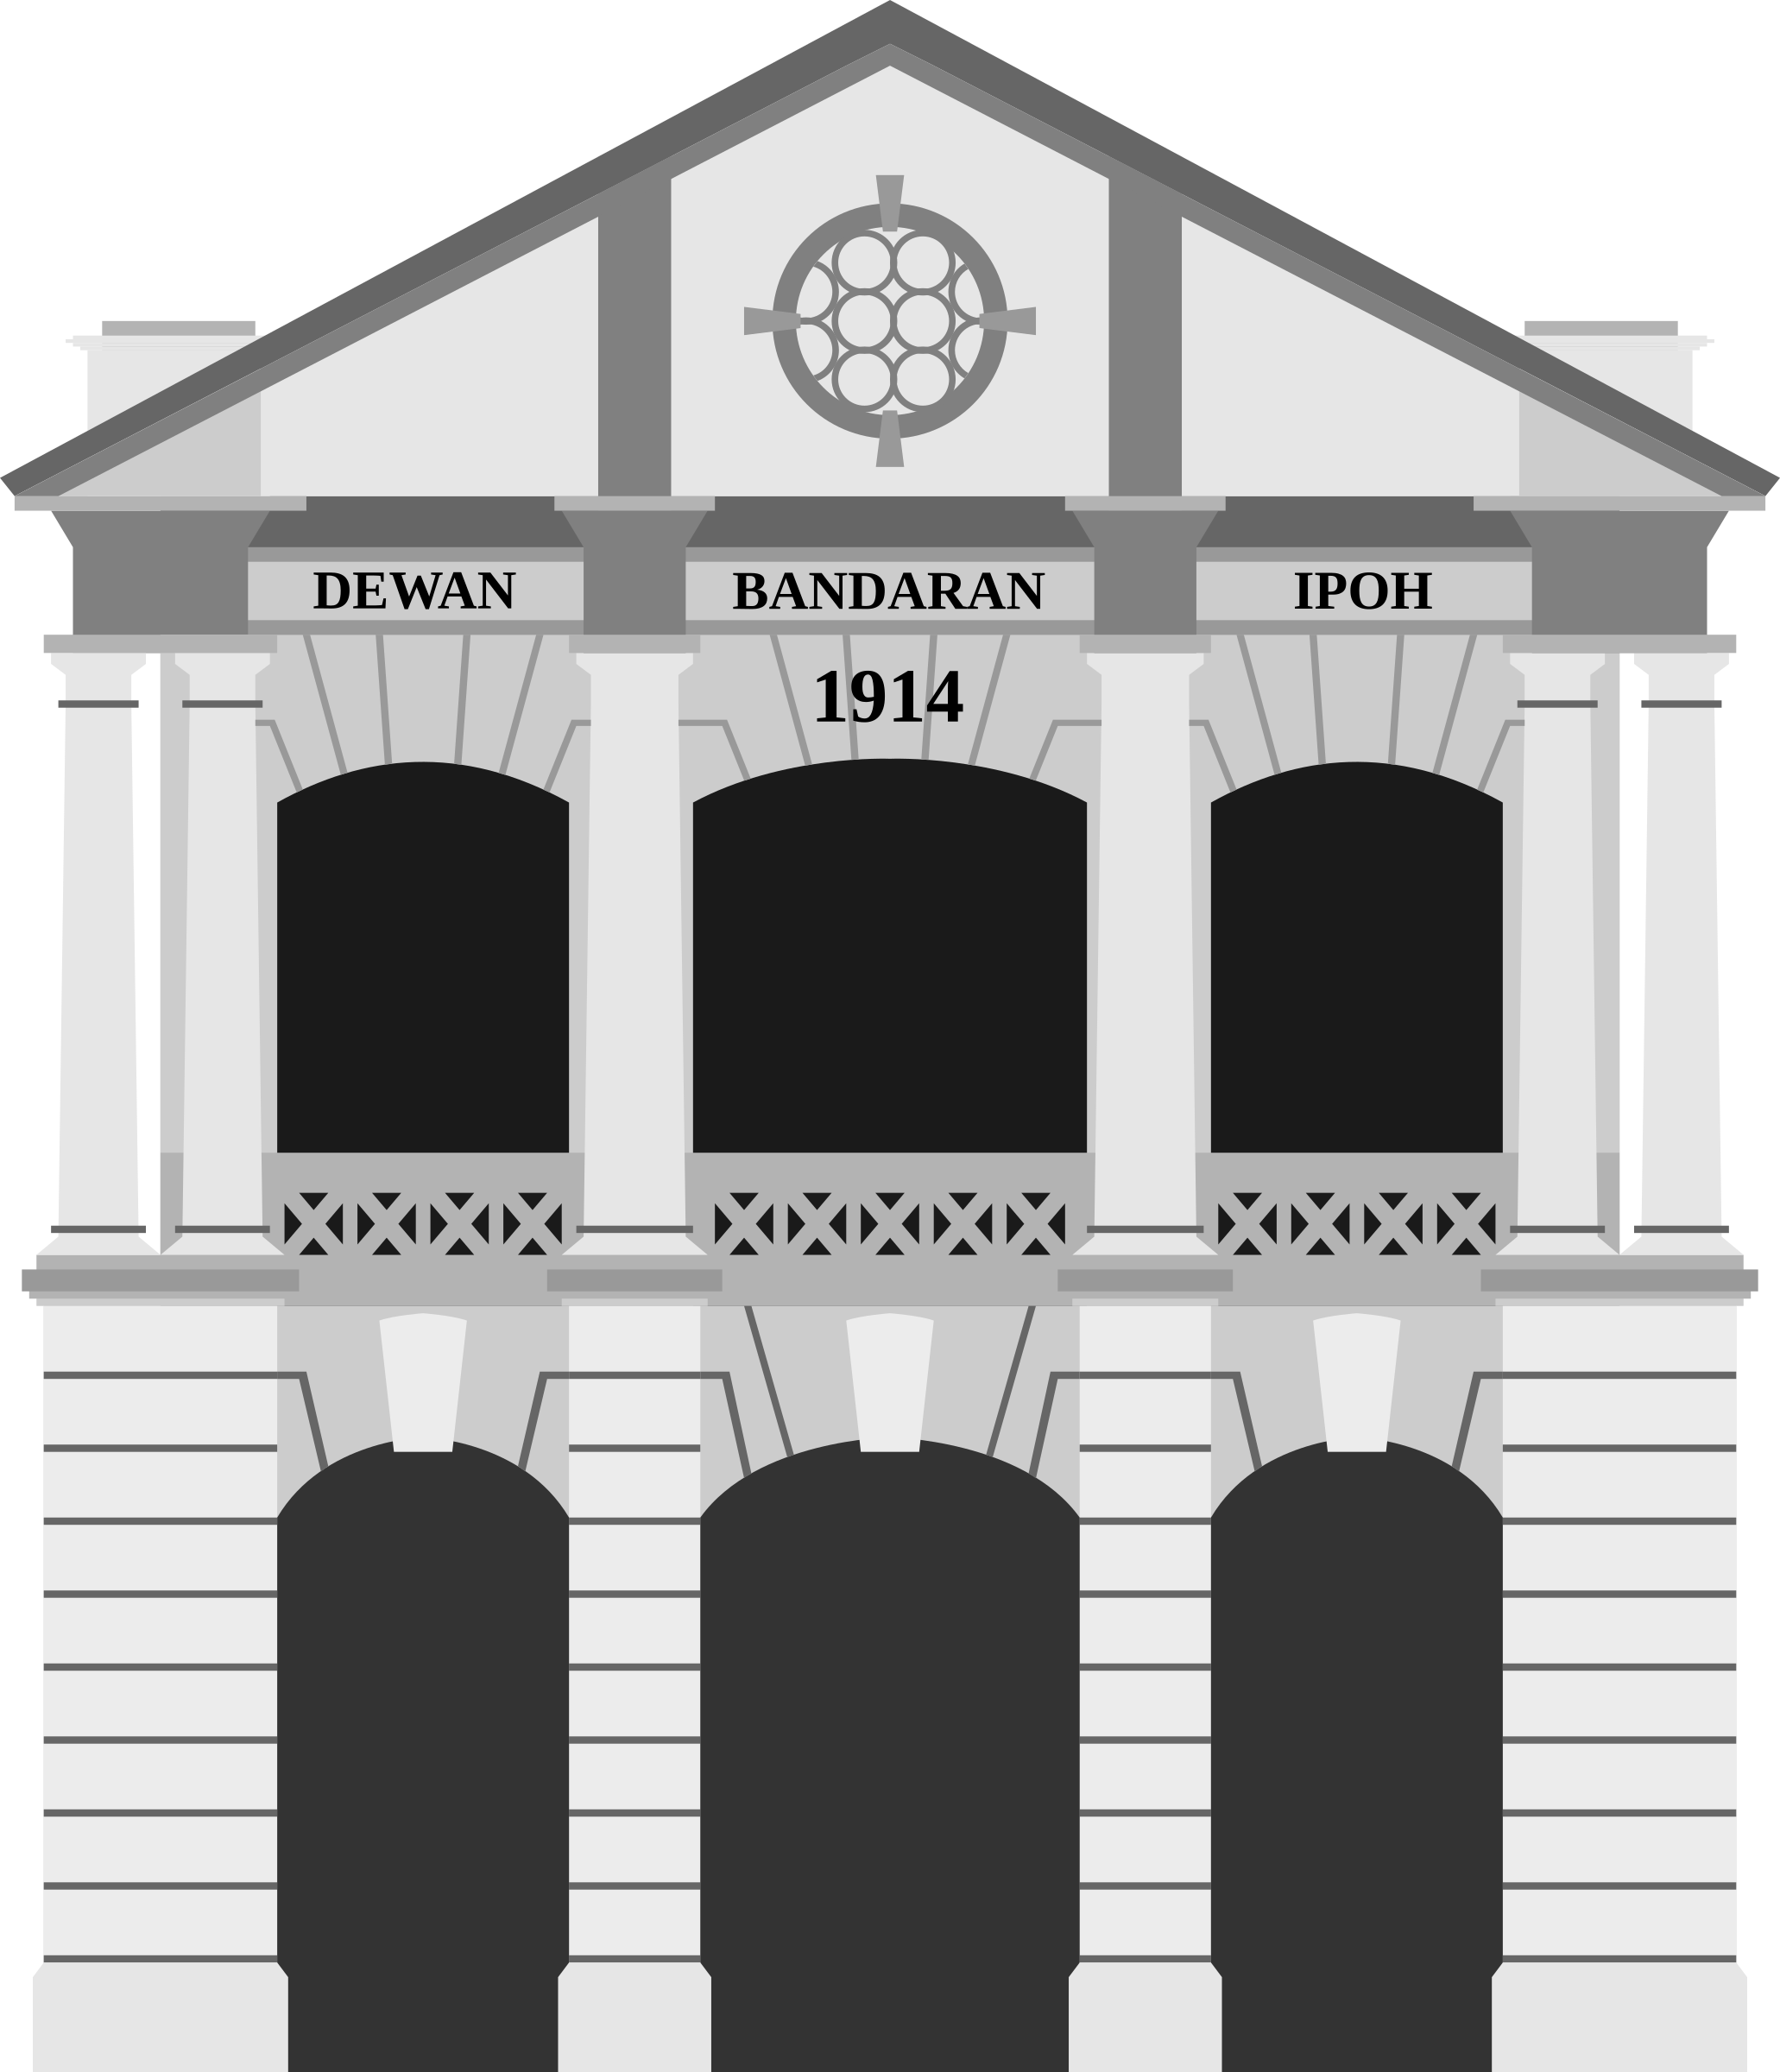 Tower clipart old. Ipoh city hall building